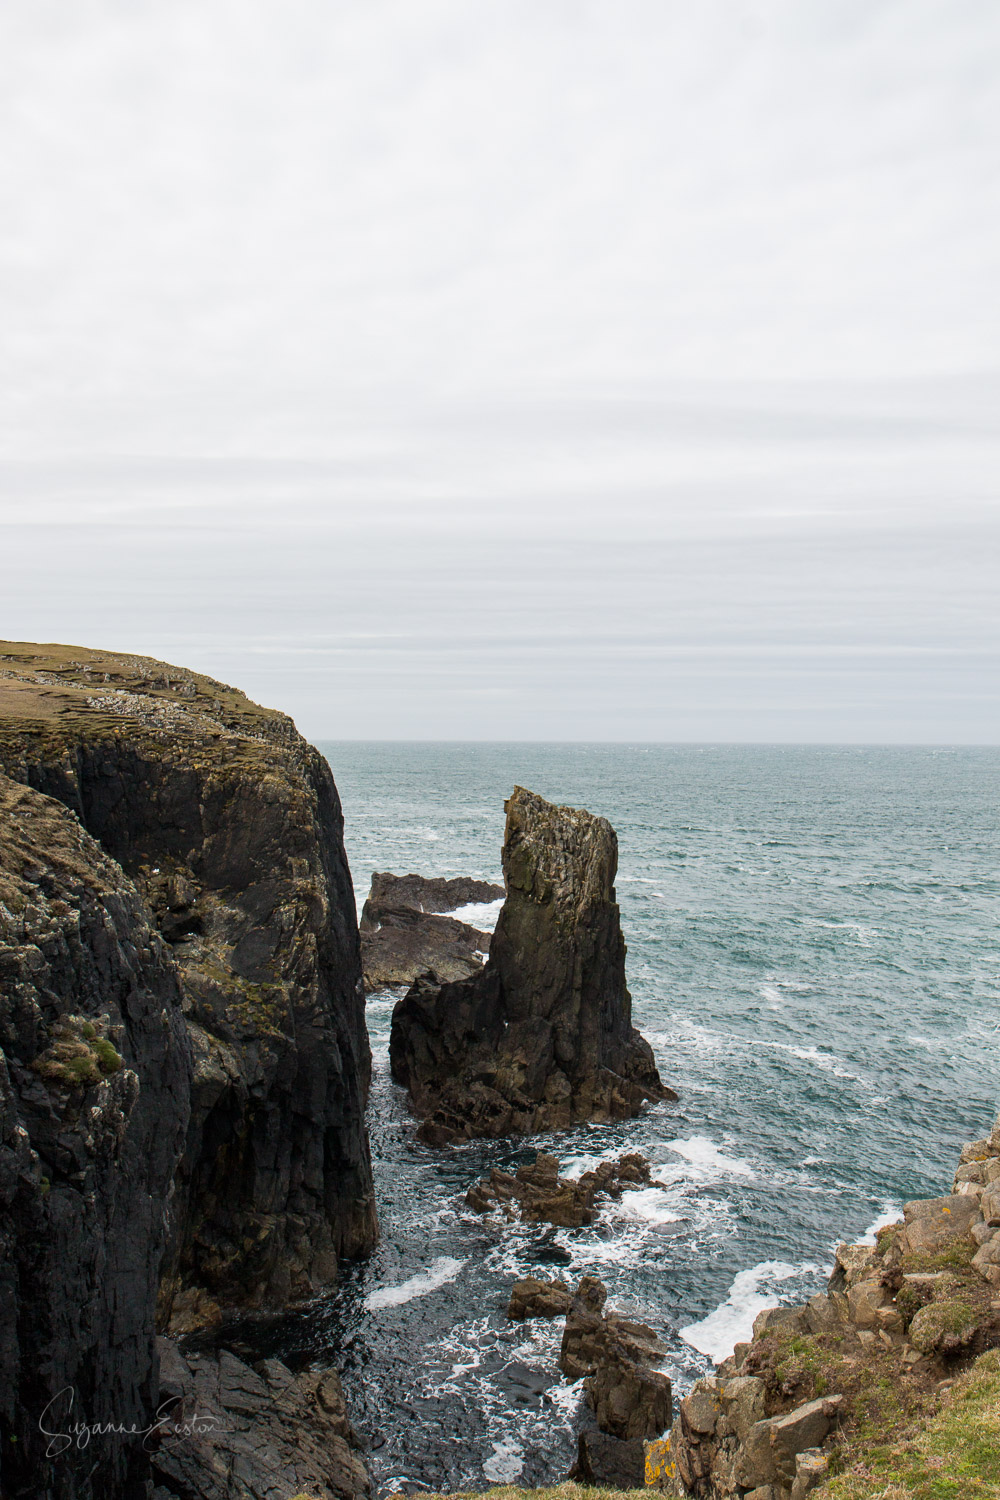 Rocks below the Butt of Lewis Lighthouse